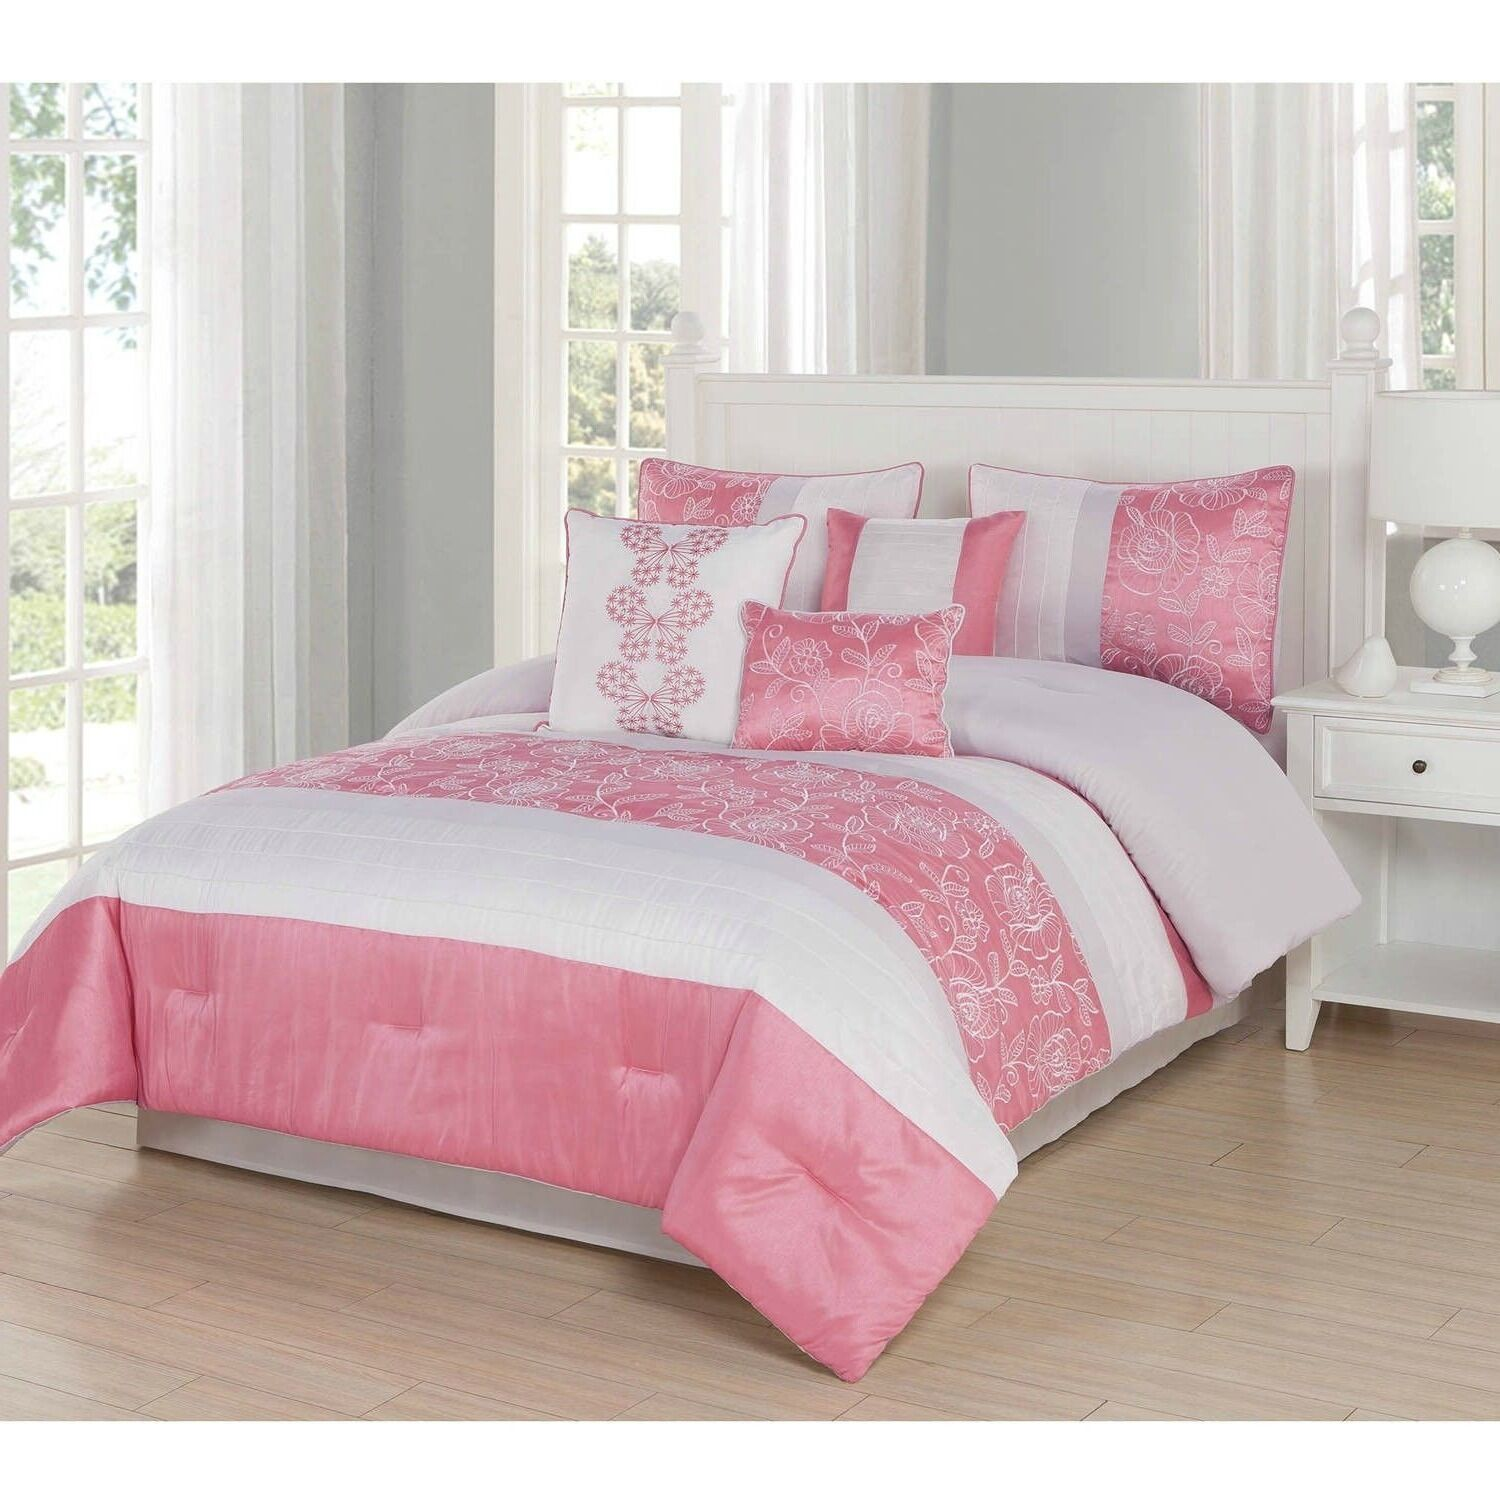 Beautiful Coral Floral Embroiderot Faux Silk Comforter King Queen 7 pcs Set New